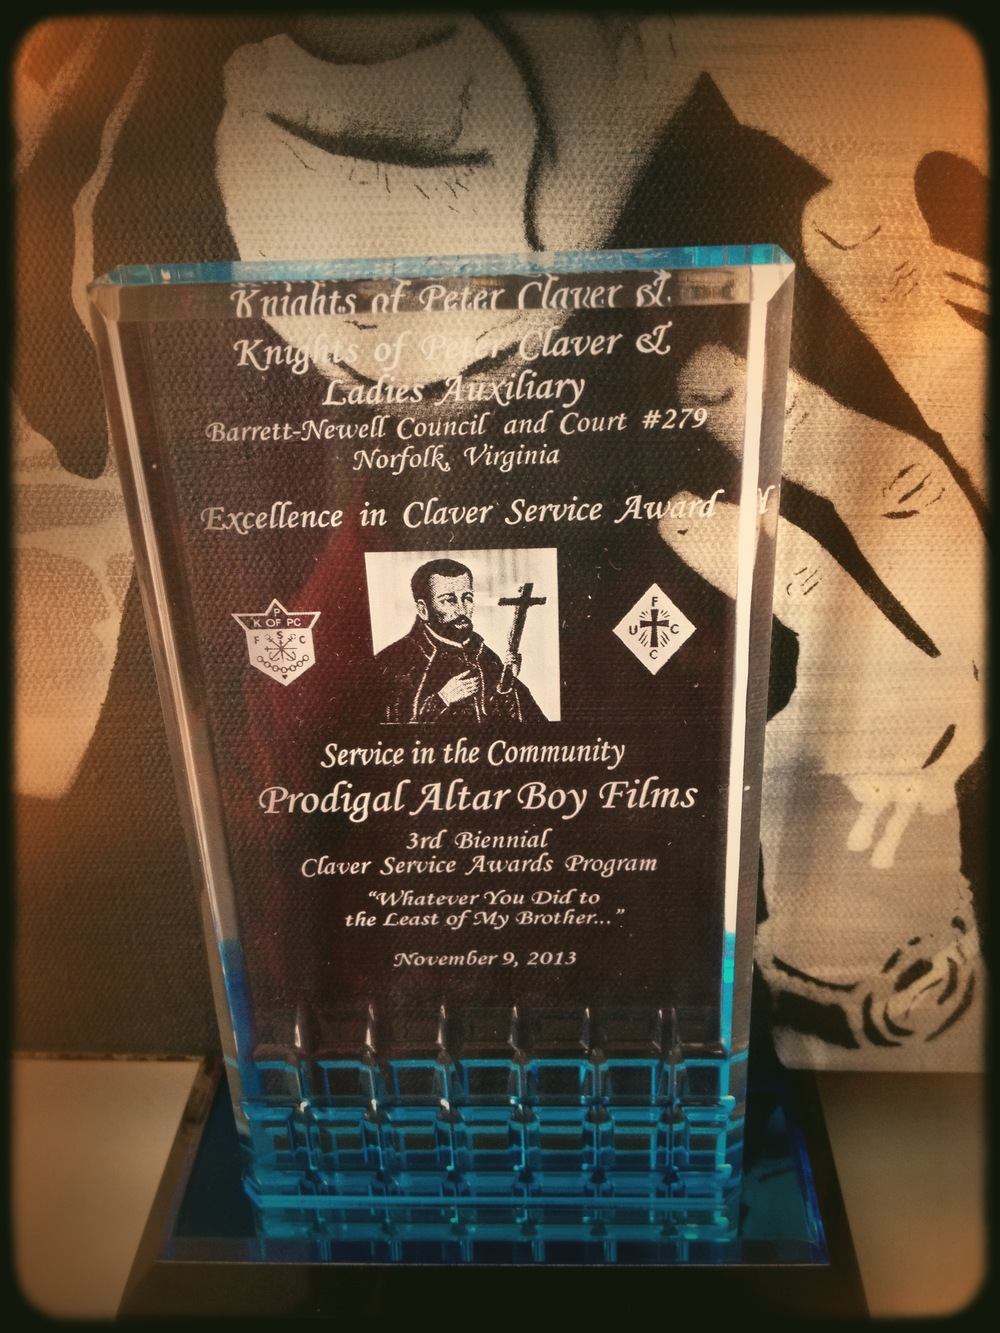 Prodigal Altar Boy Films gets Knights of Peter Claver 2013 Service in the Community Award